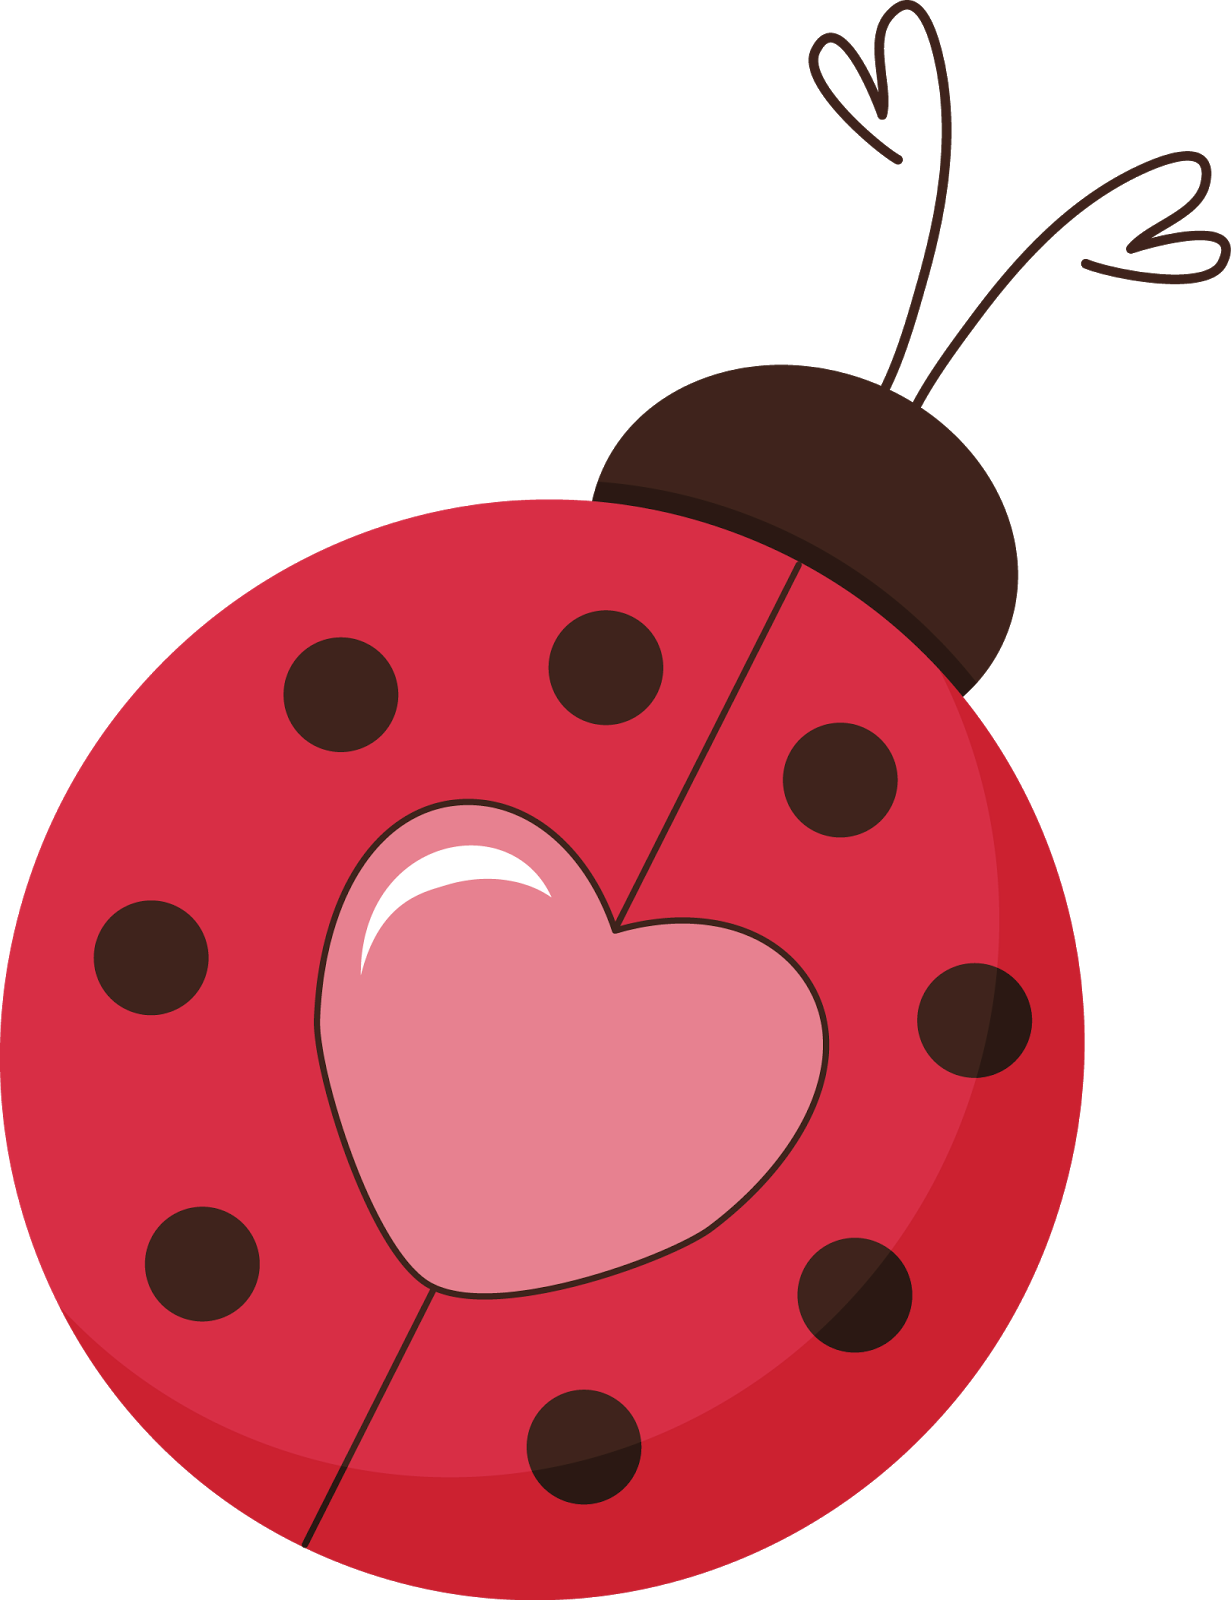 The barefoot chorister love. Ladybug clipart classroom decoration